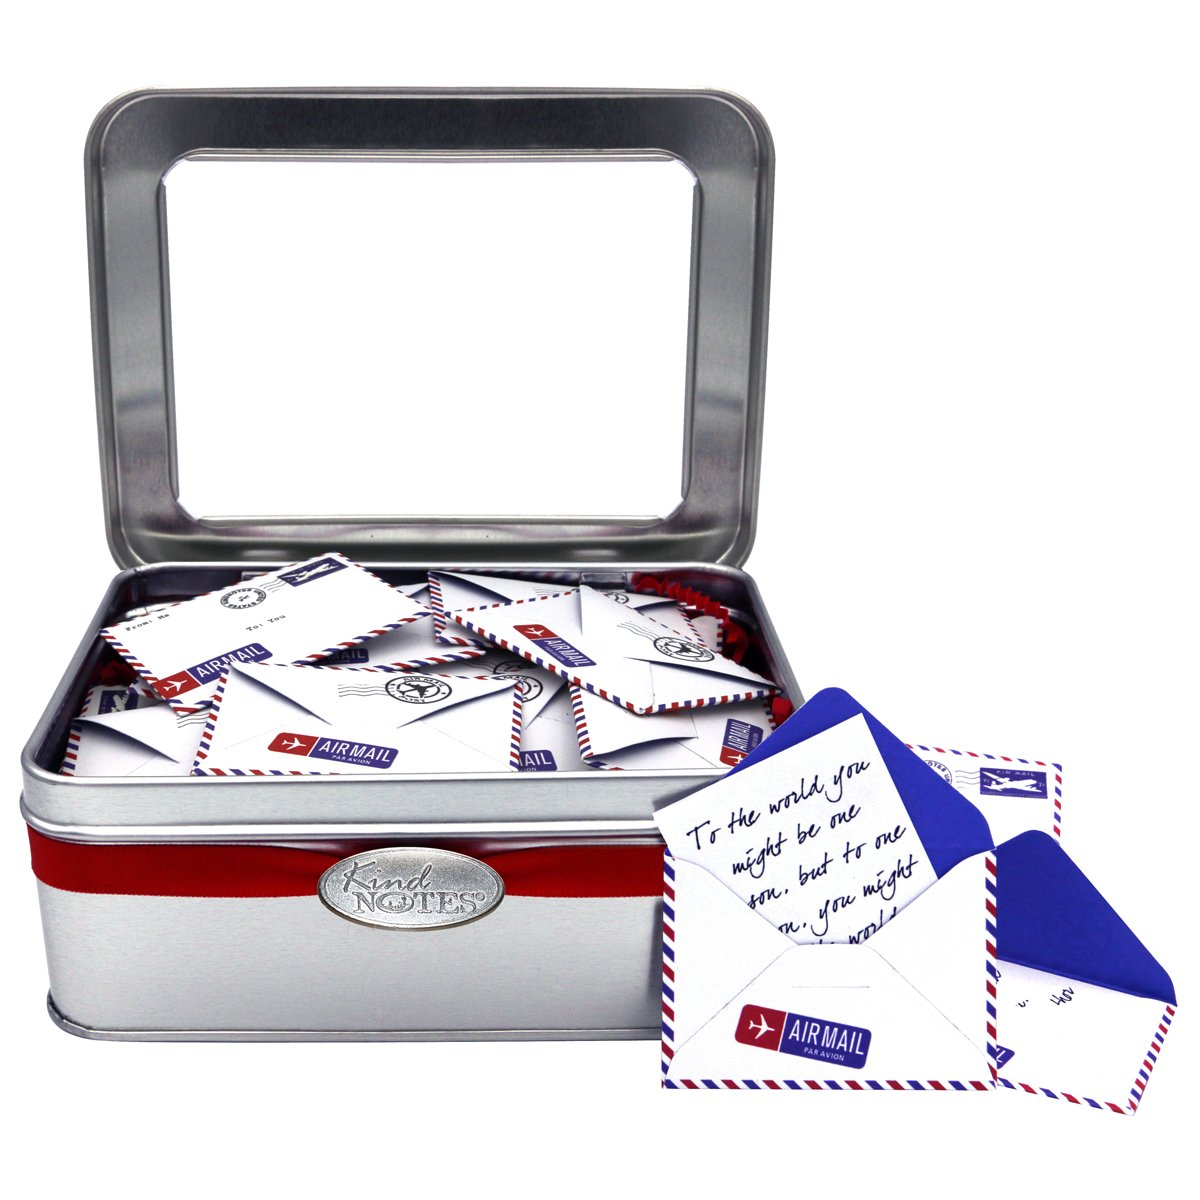 KindNotes Tin INSPIRATIONAL Keepsake Gift Box of Messages for Him or Her Birthday, Thank you, Anniversary, Just Because - Airmail Red